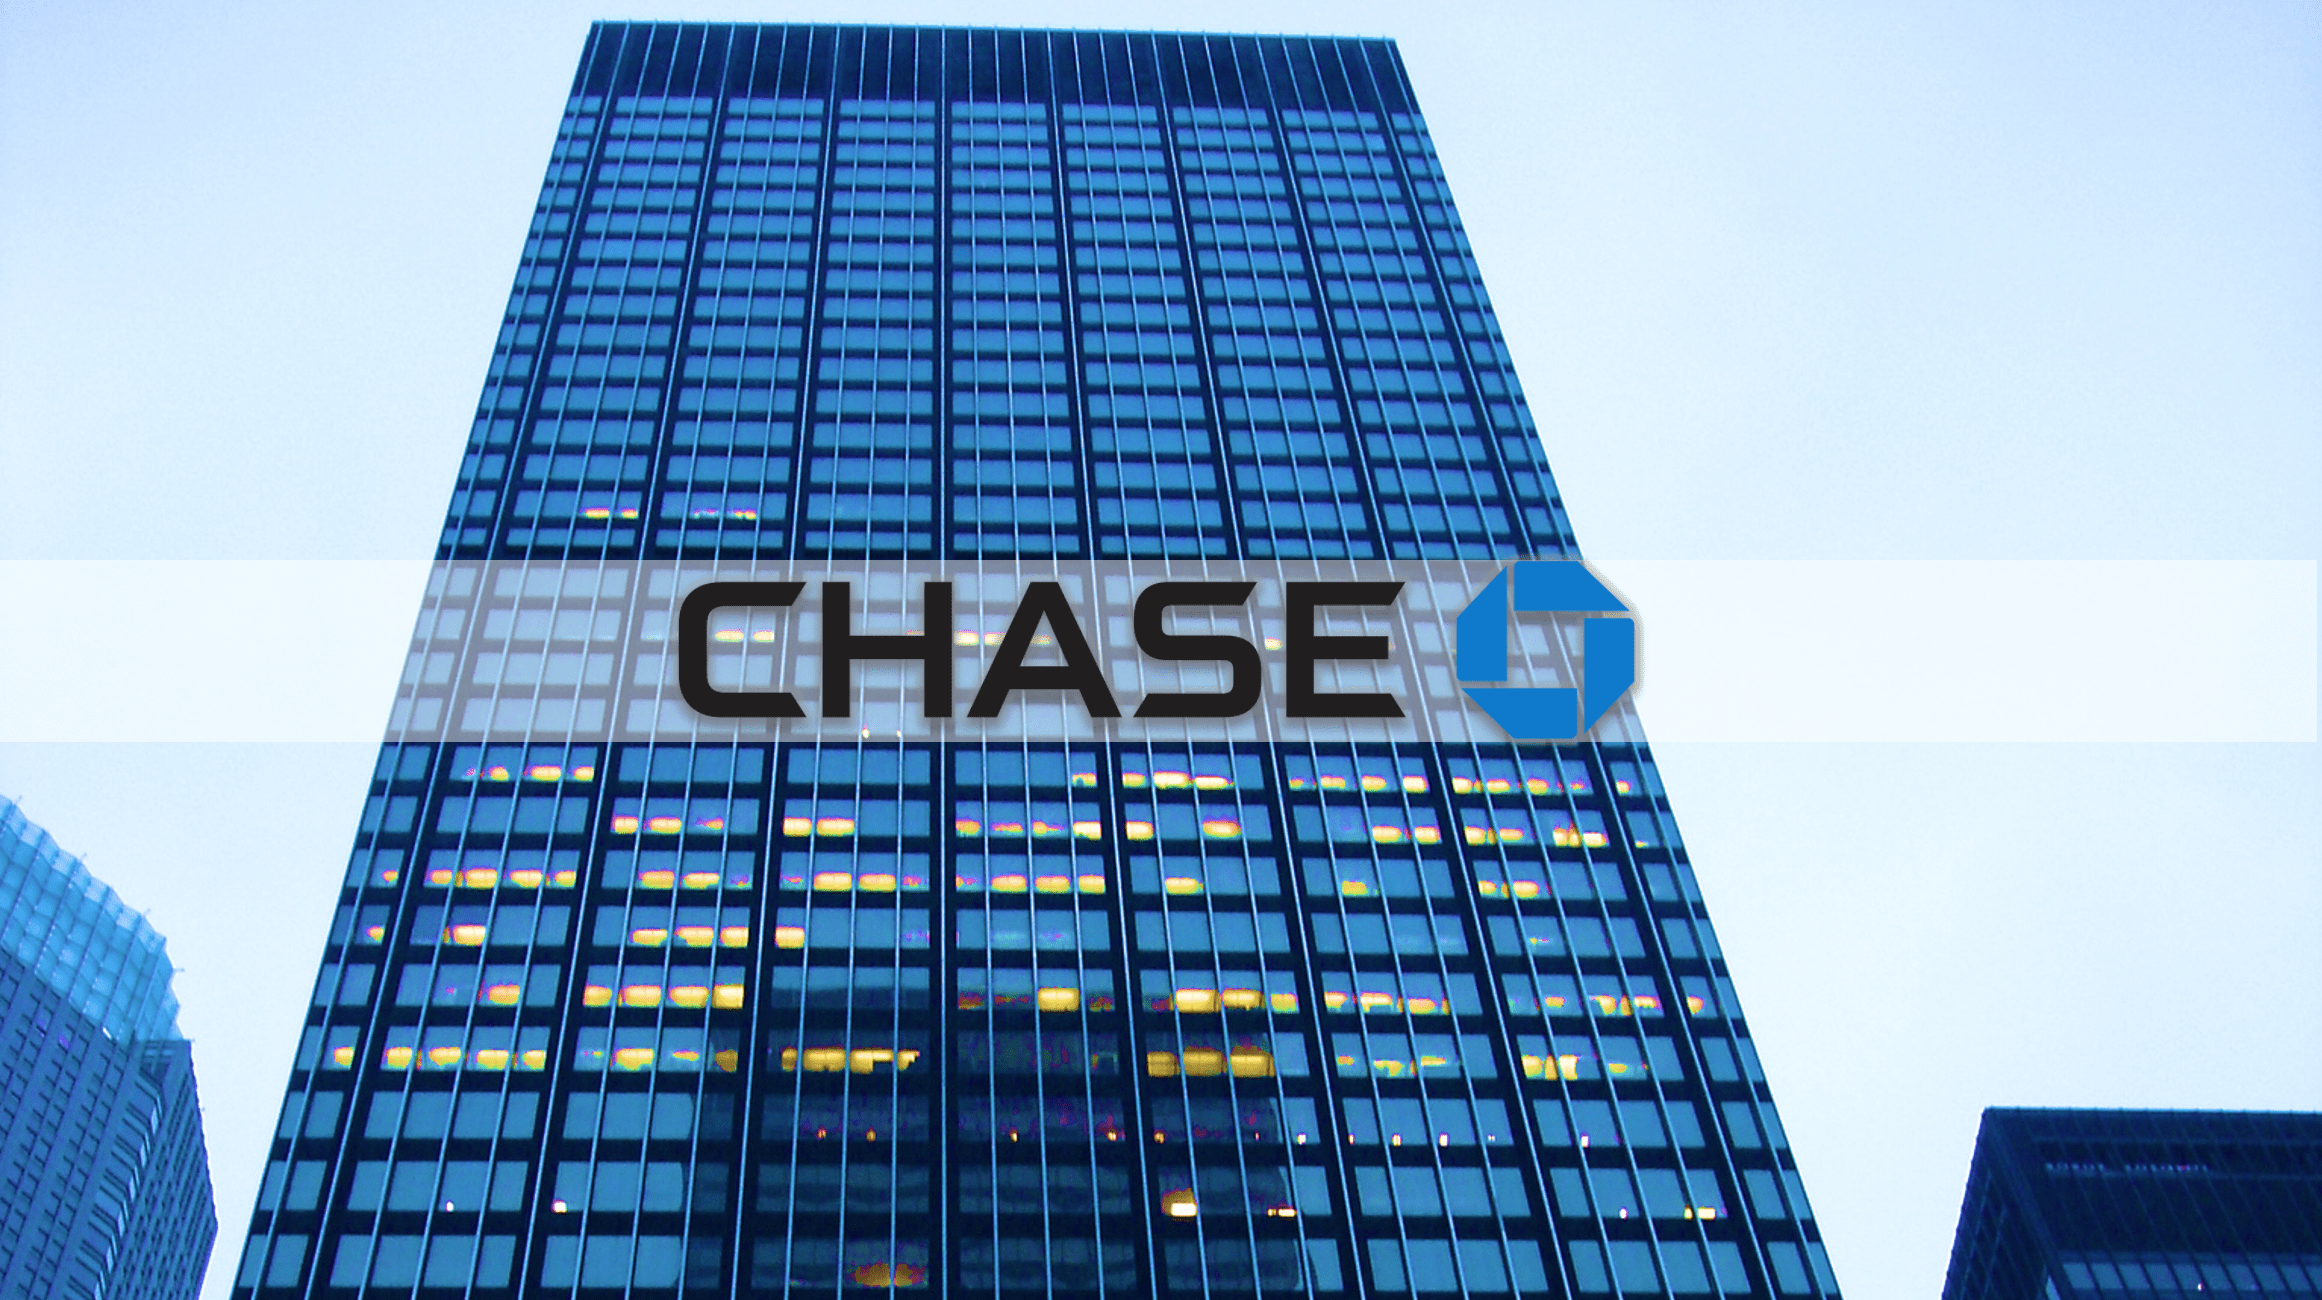 Chase Bank has admitted to the presence of a technical bug on its online banking website and appthat allowed accidentalleakage ofcus